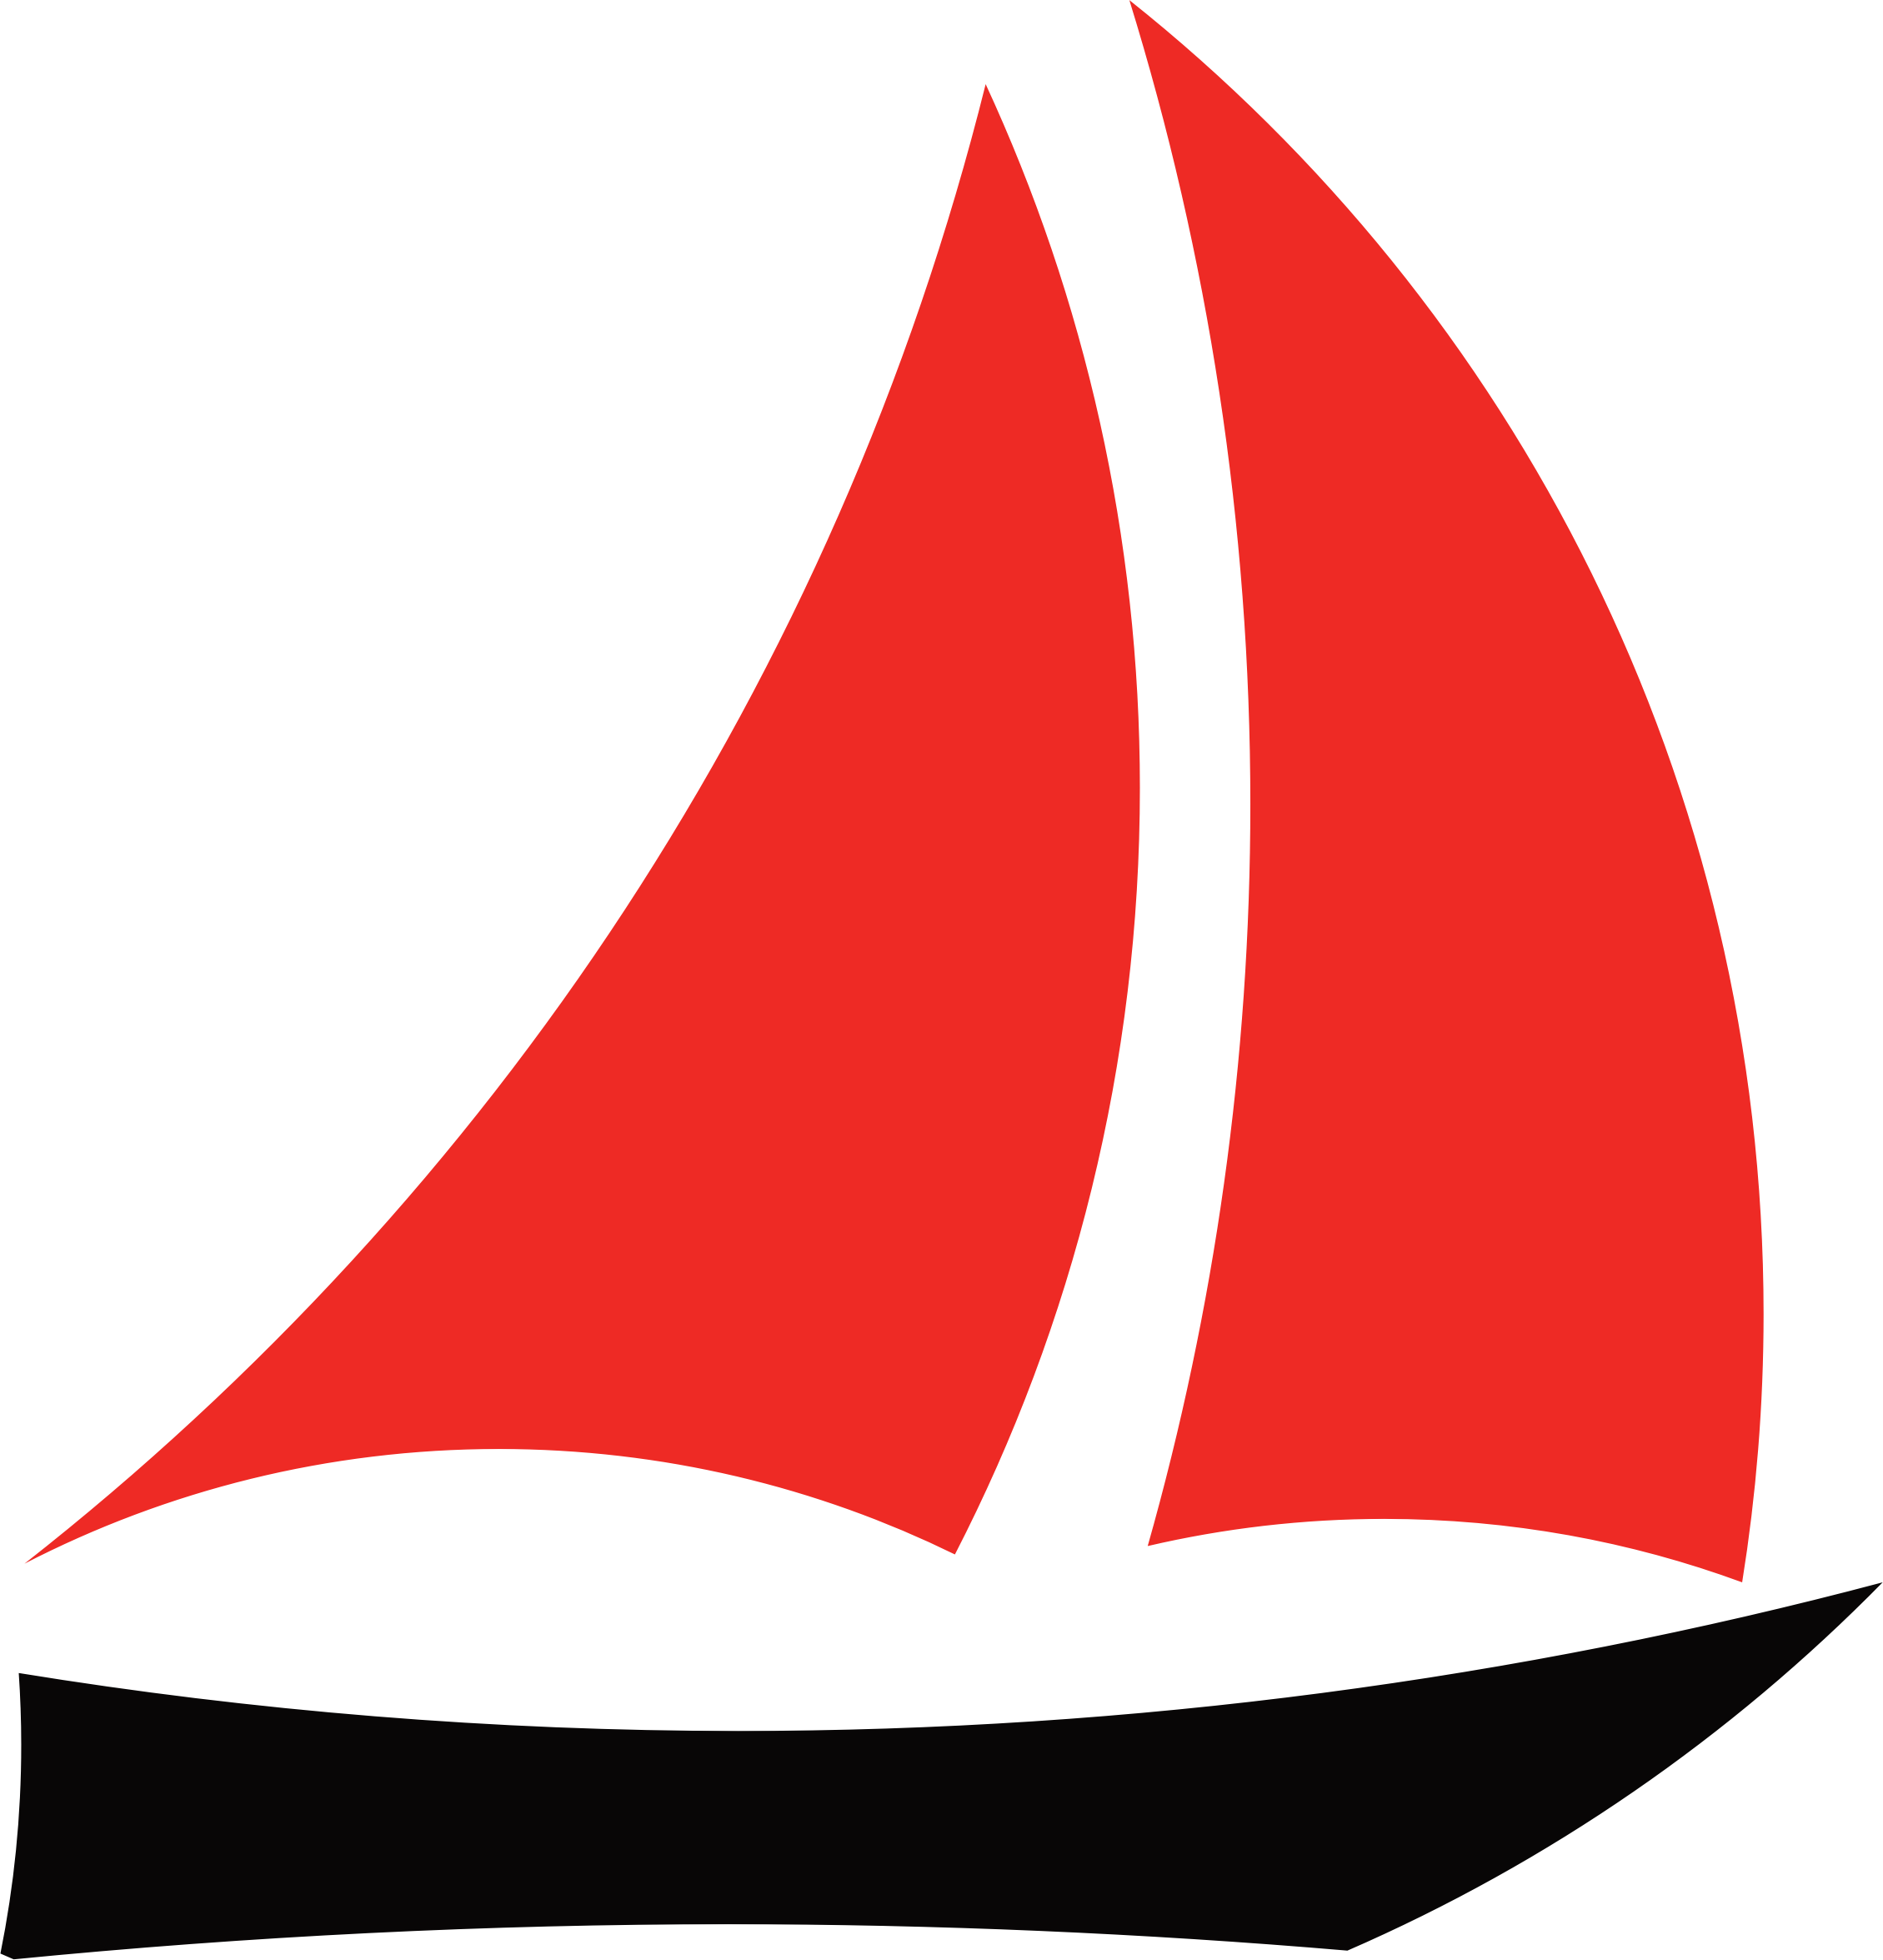 Sail clipart sunset. Red sailboat great free